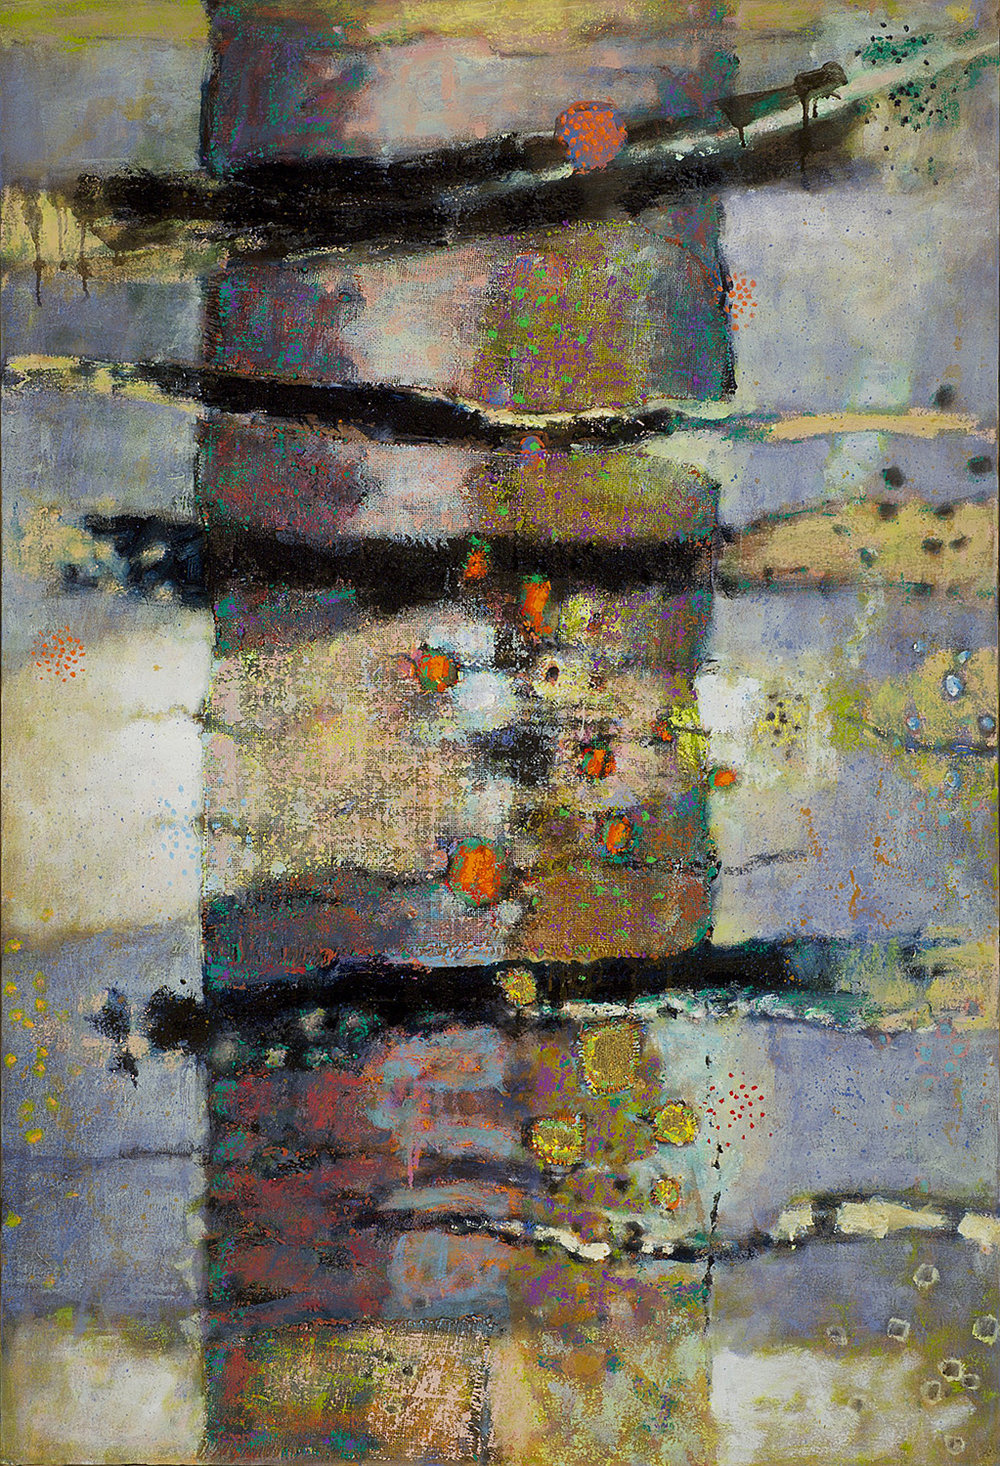 Hyper Bole II | oil on canvas | 47 x 32"